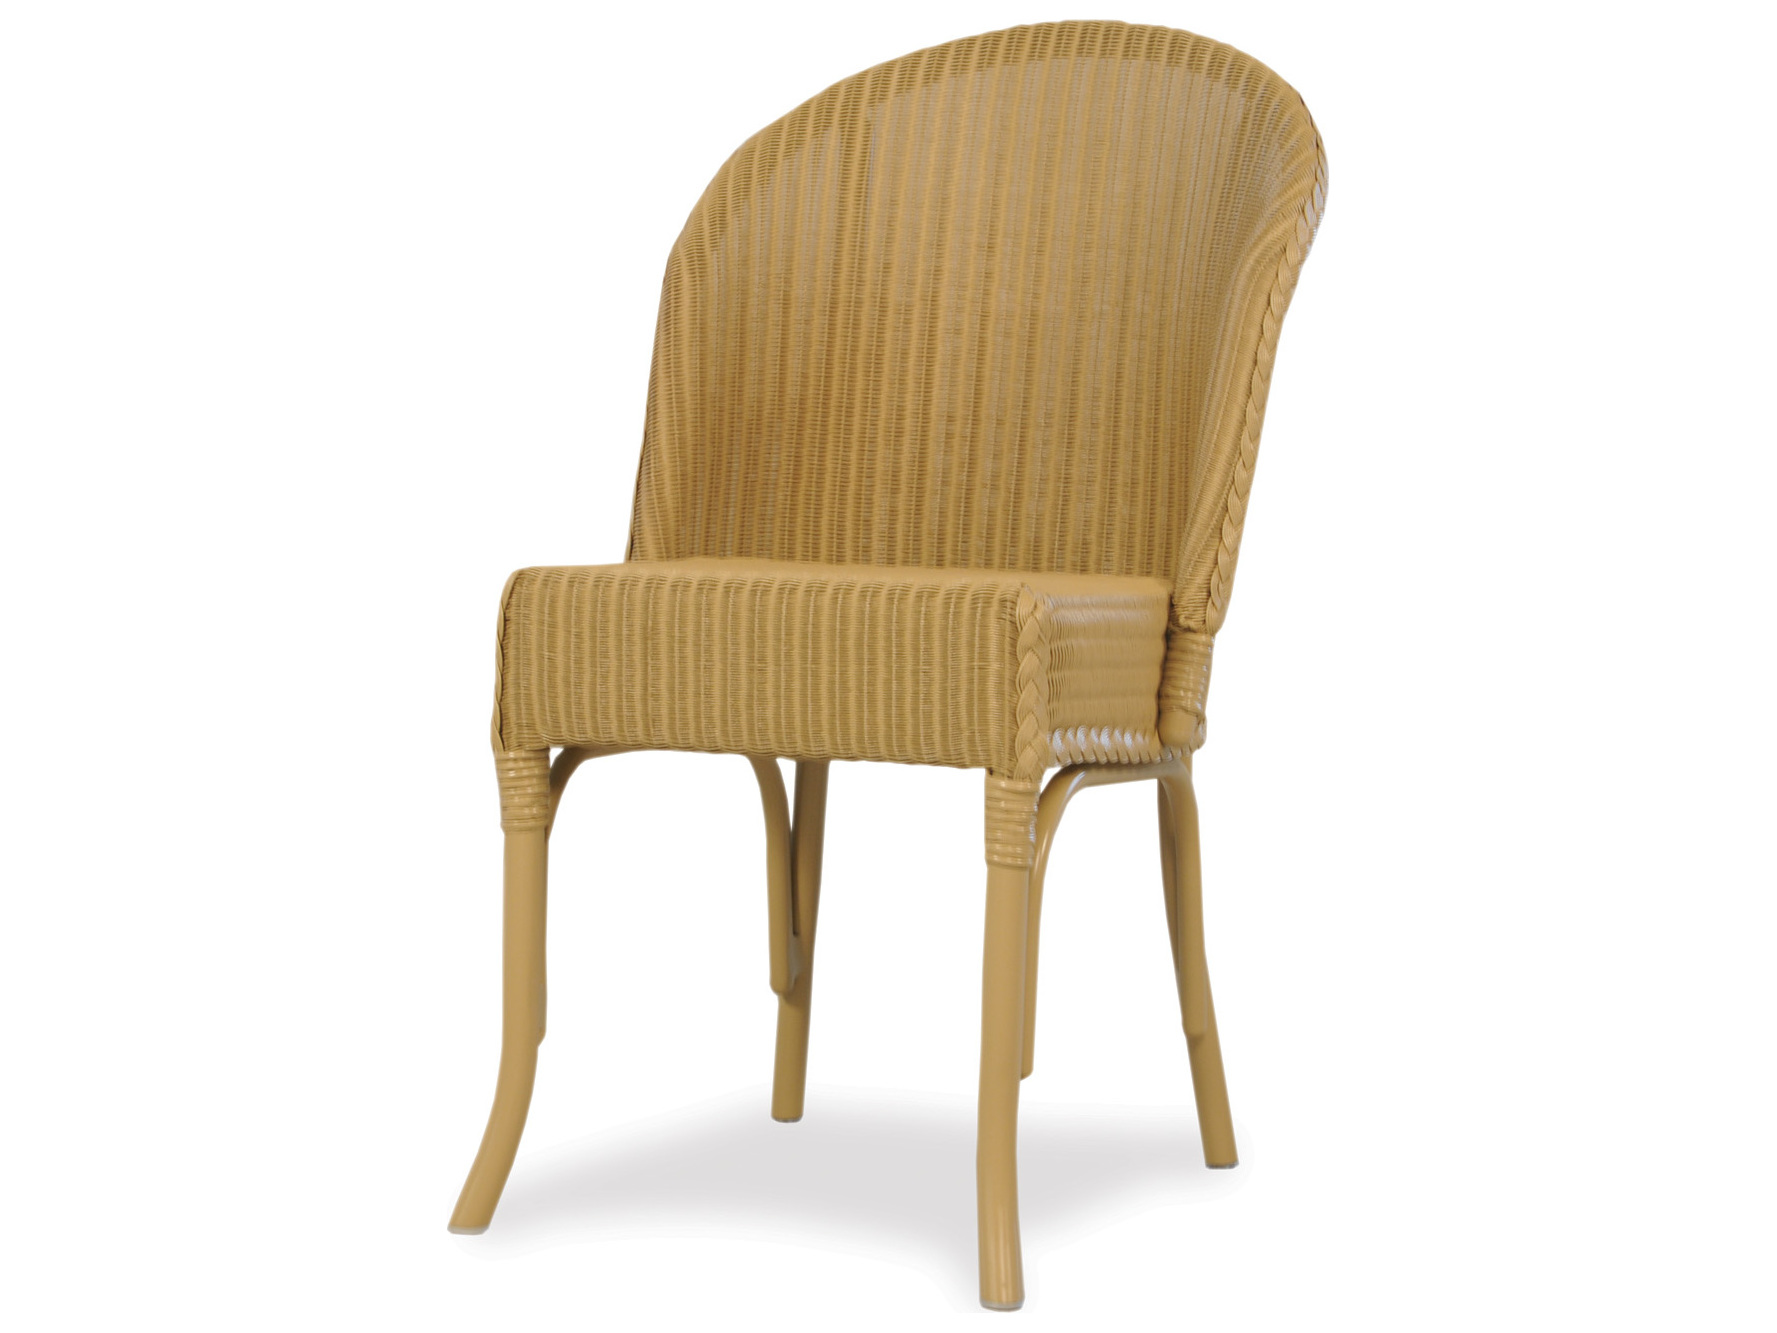 Wicker Circle Chair Lloyd Flanders Dining And Accessories Wicker Round Back